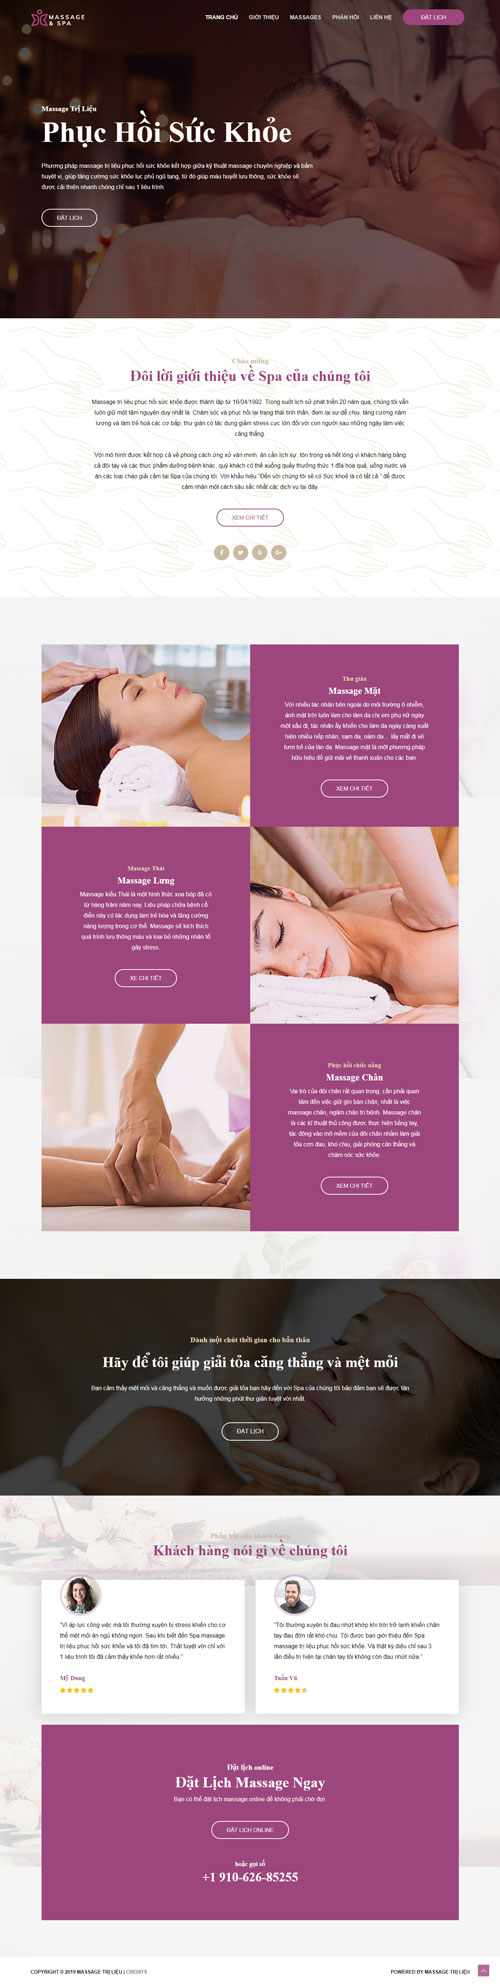 website-massage-tri-lieu